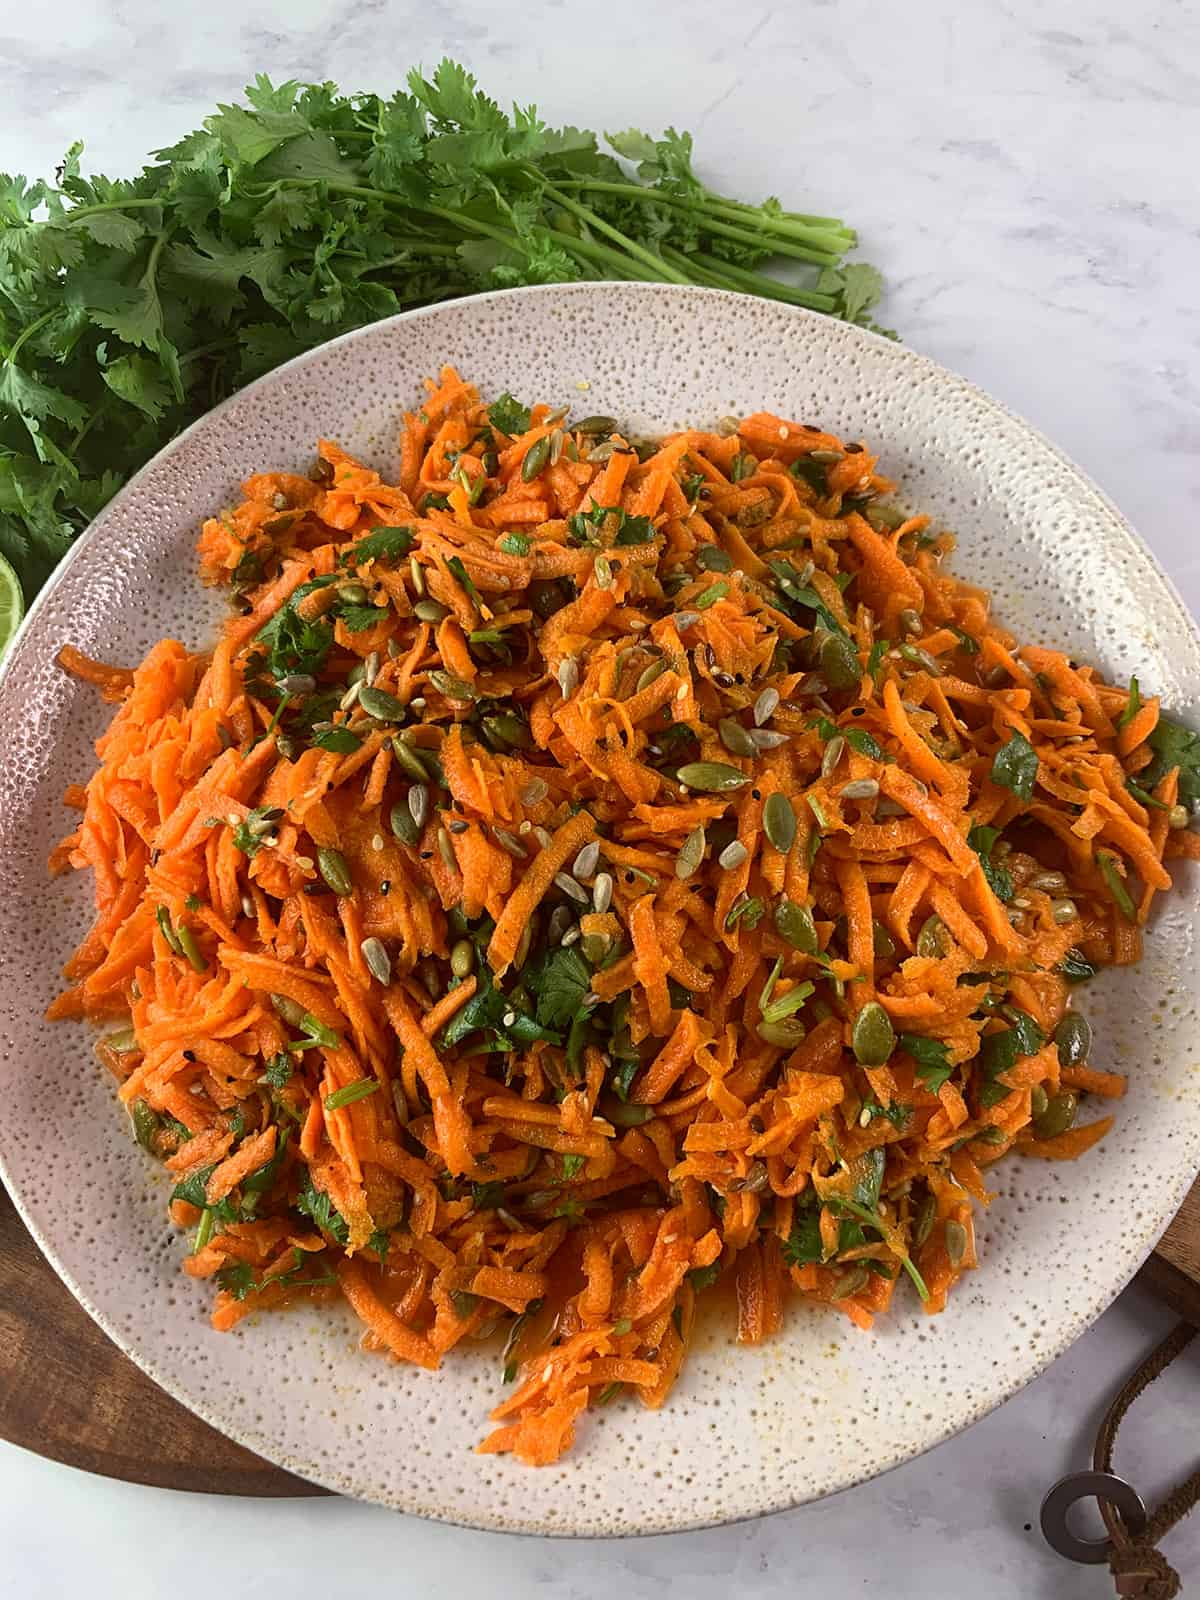 SHREDDED CARROT SALAD CLOSE UP IN PORTRAIT